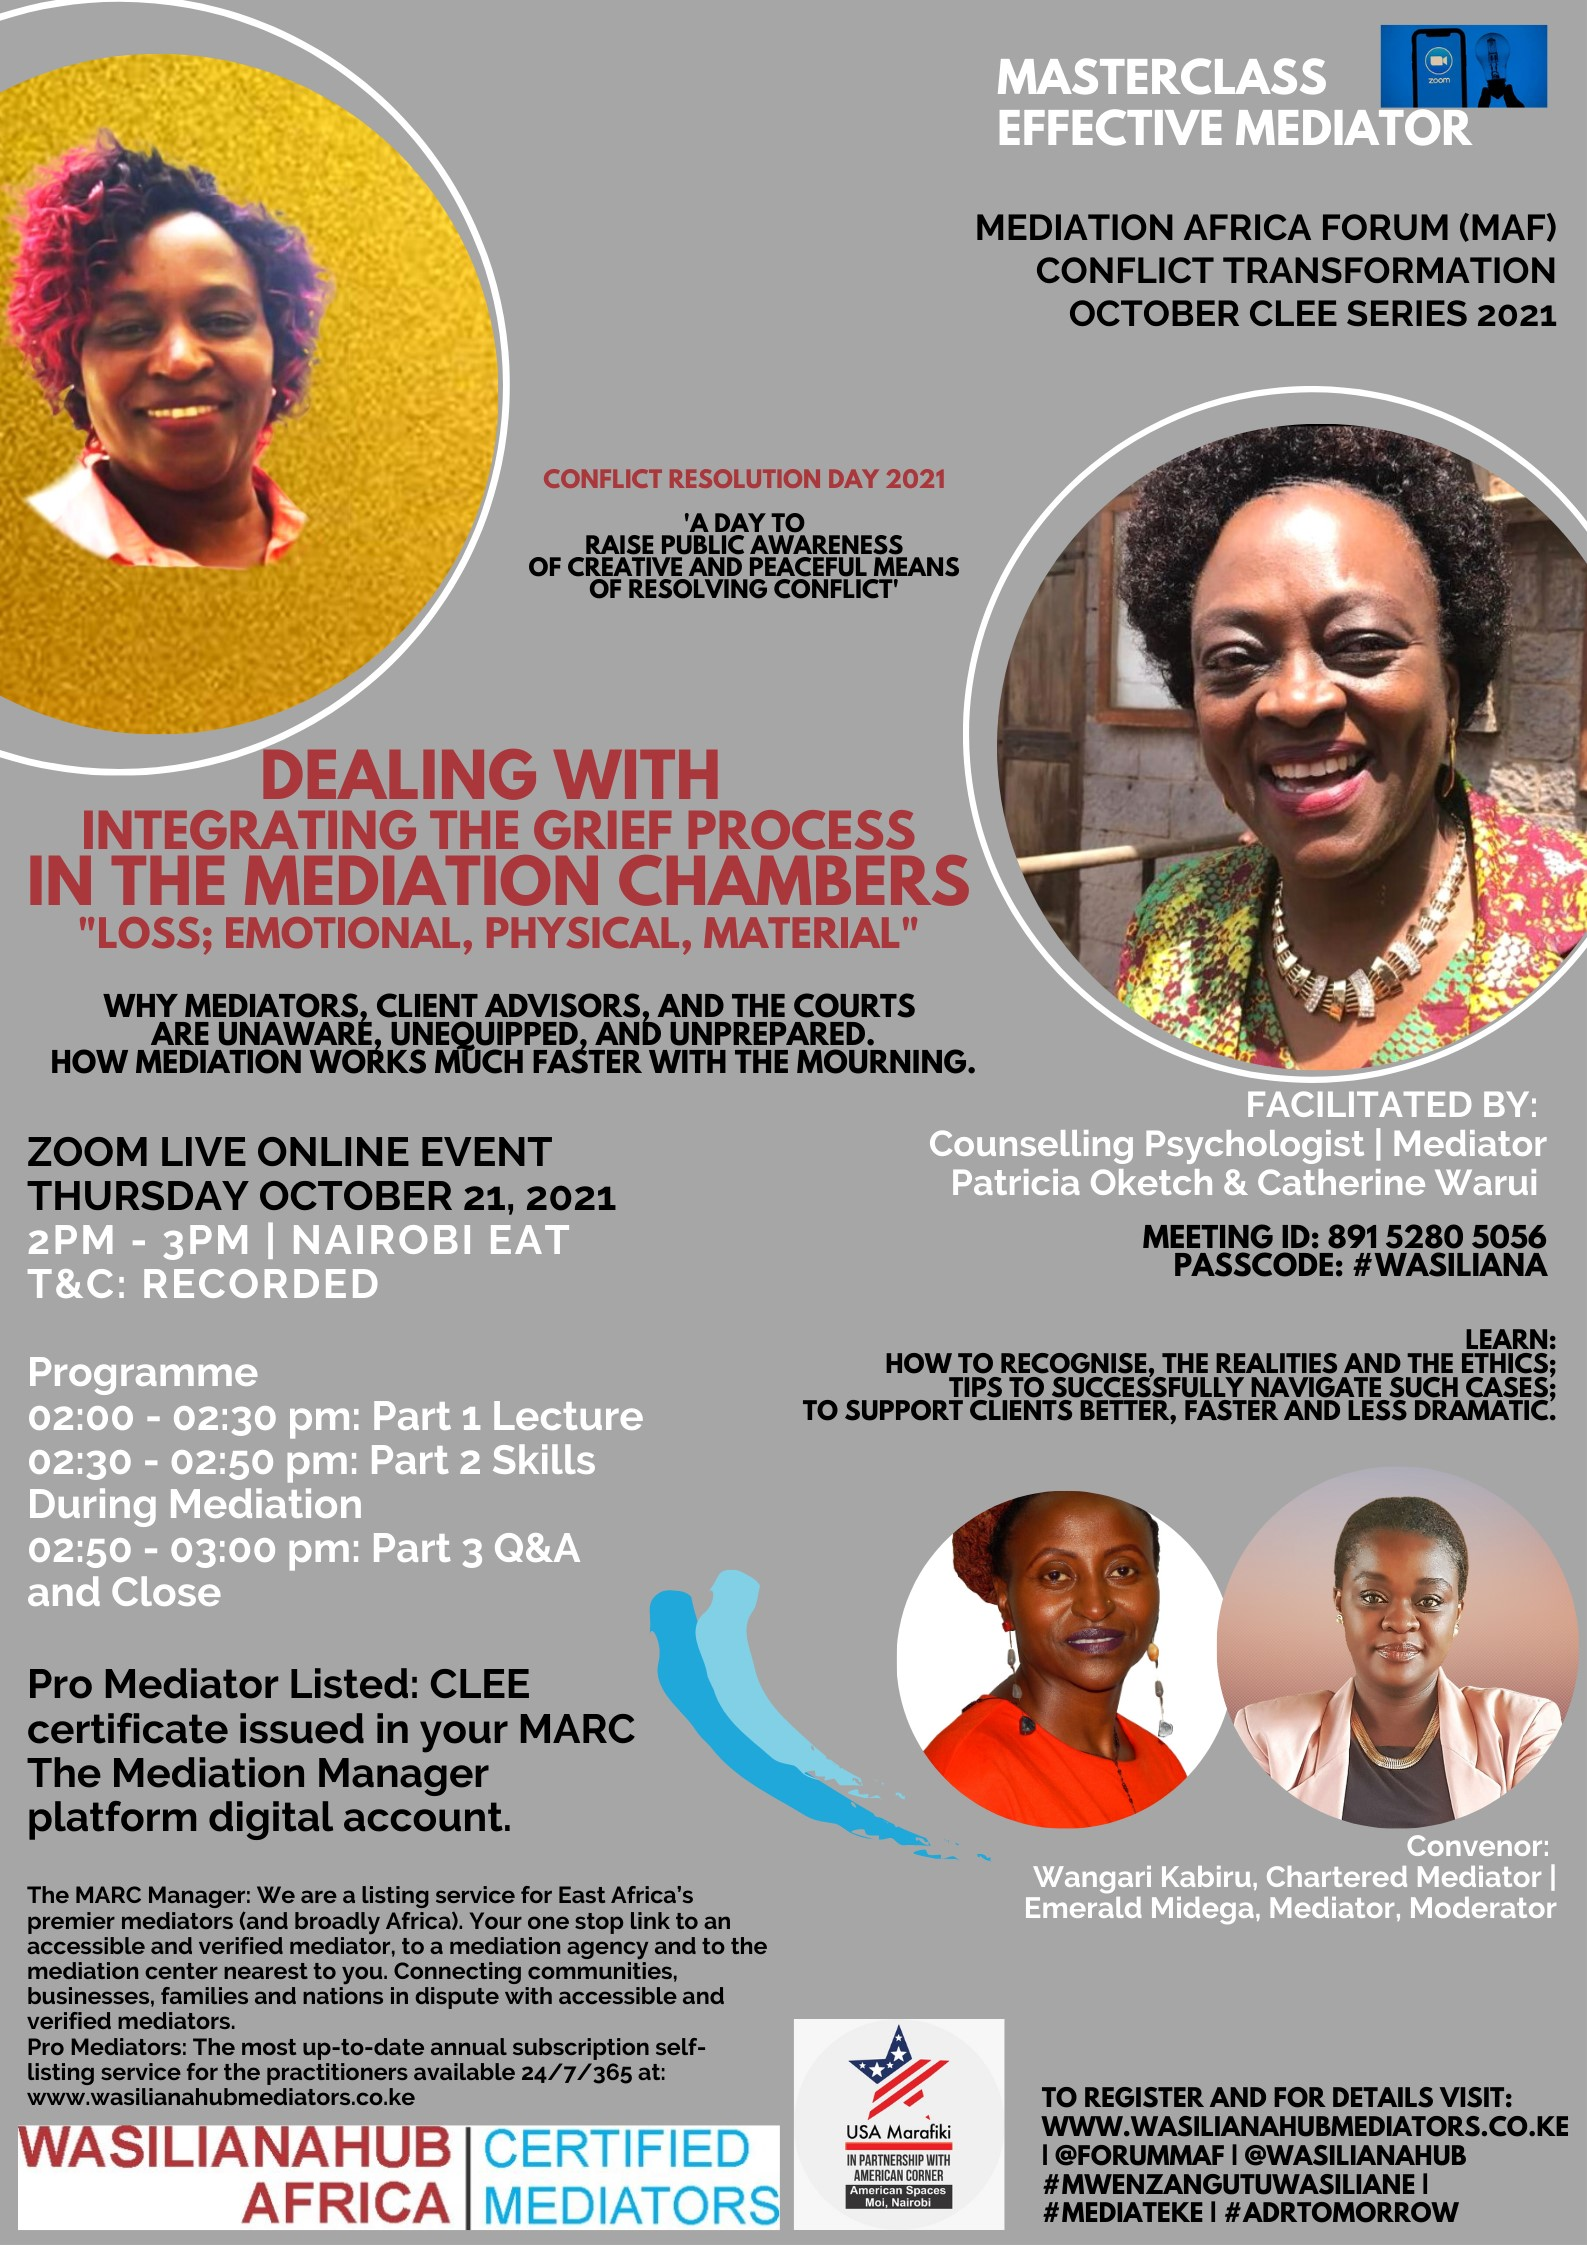 WASILIANAHUB-EFFECTIVE-MEDIATOR-MASTERCLASS-ON-GRIEF-WITH-PATRICIA-OKETCH-CATHERINE-WARUI-I-OCT-CLEE-SERIES-2021-CONFLICT-RESOLUTION-DAY-2021